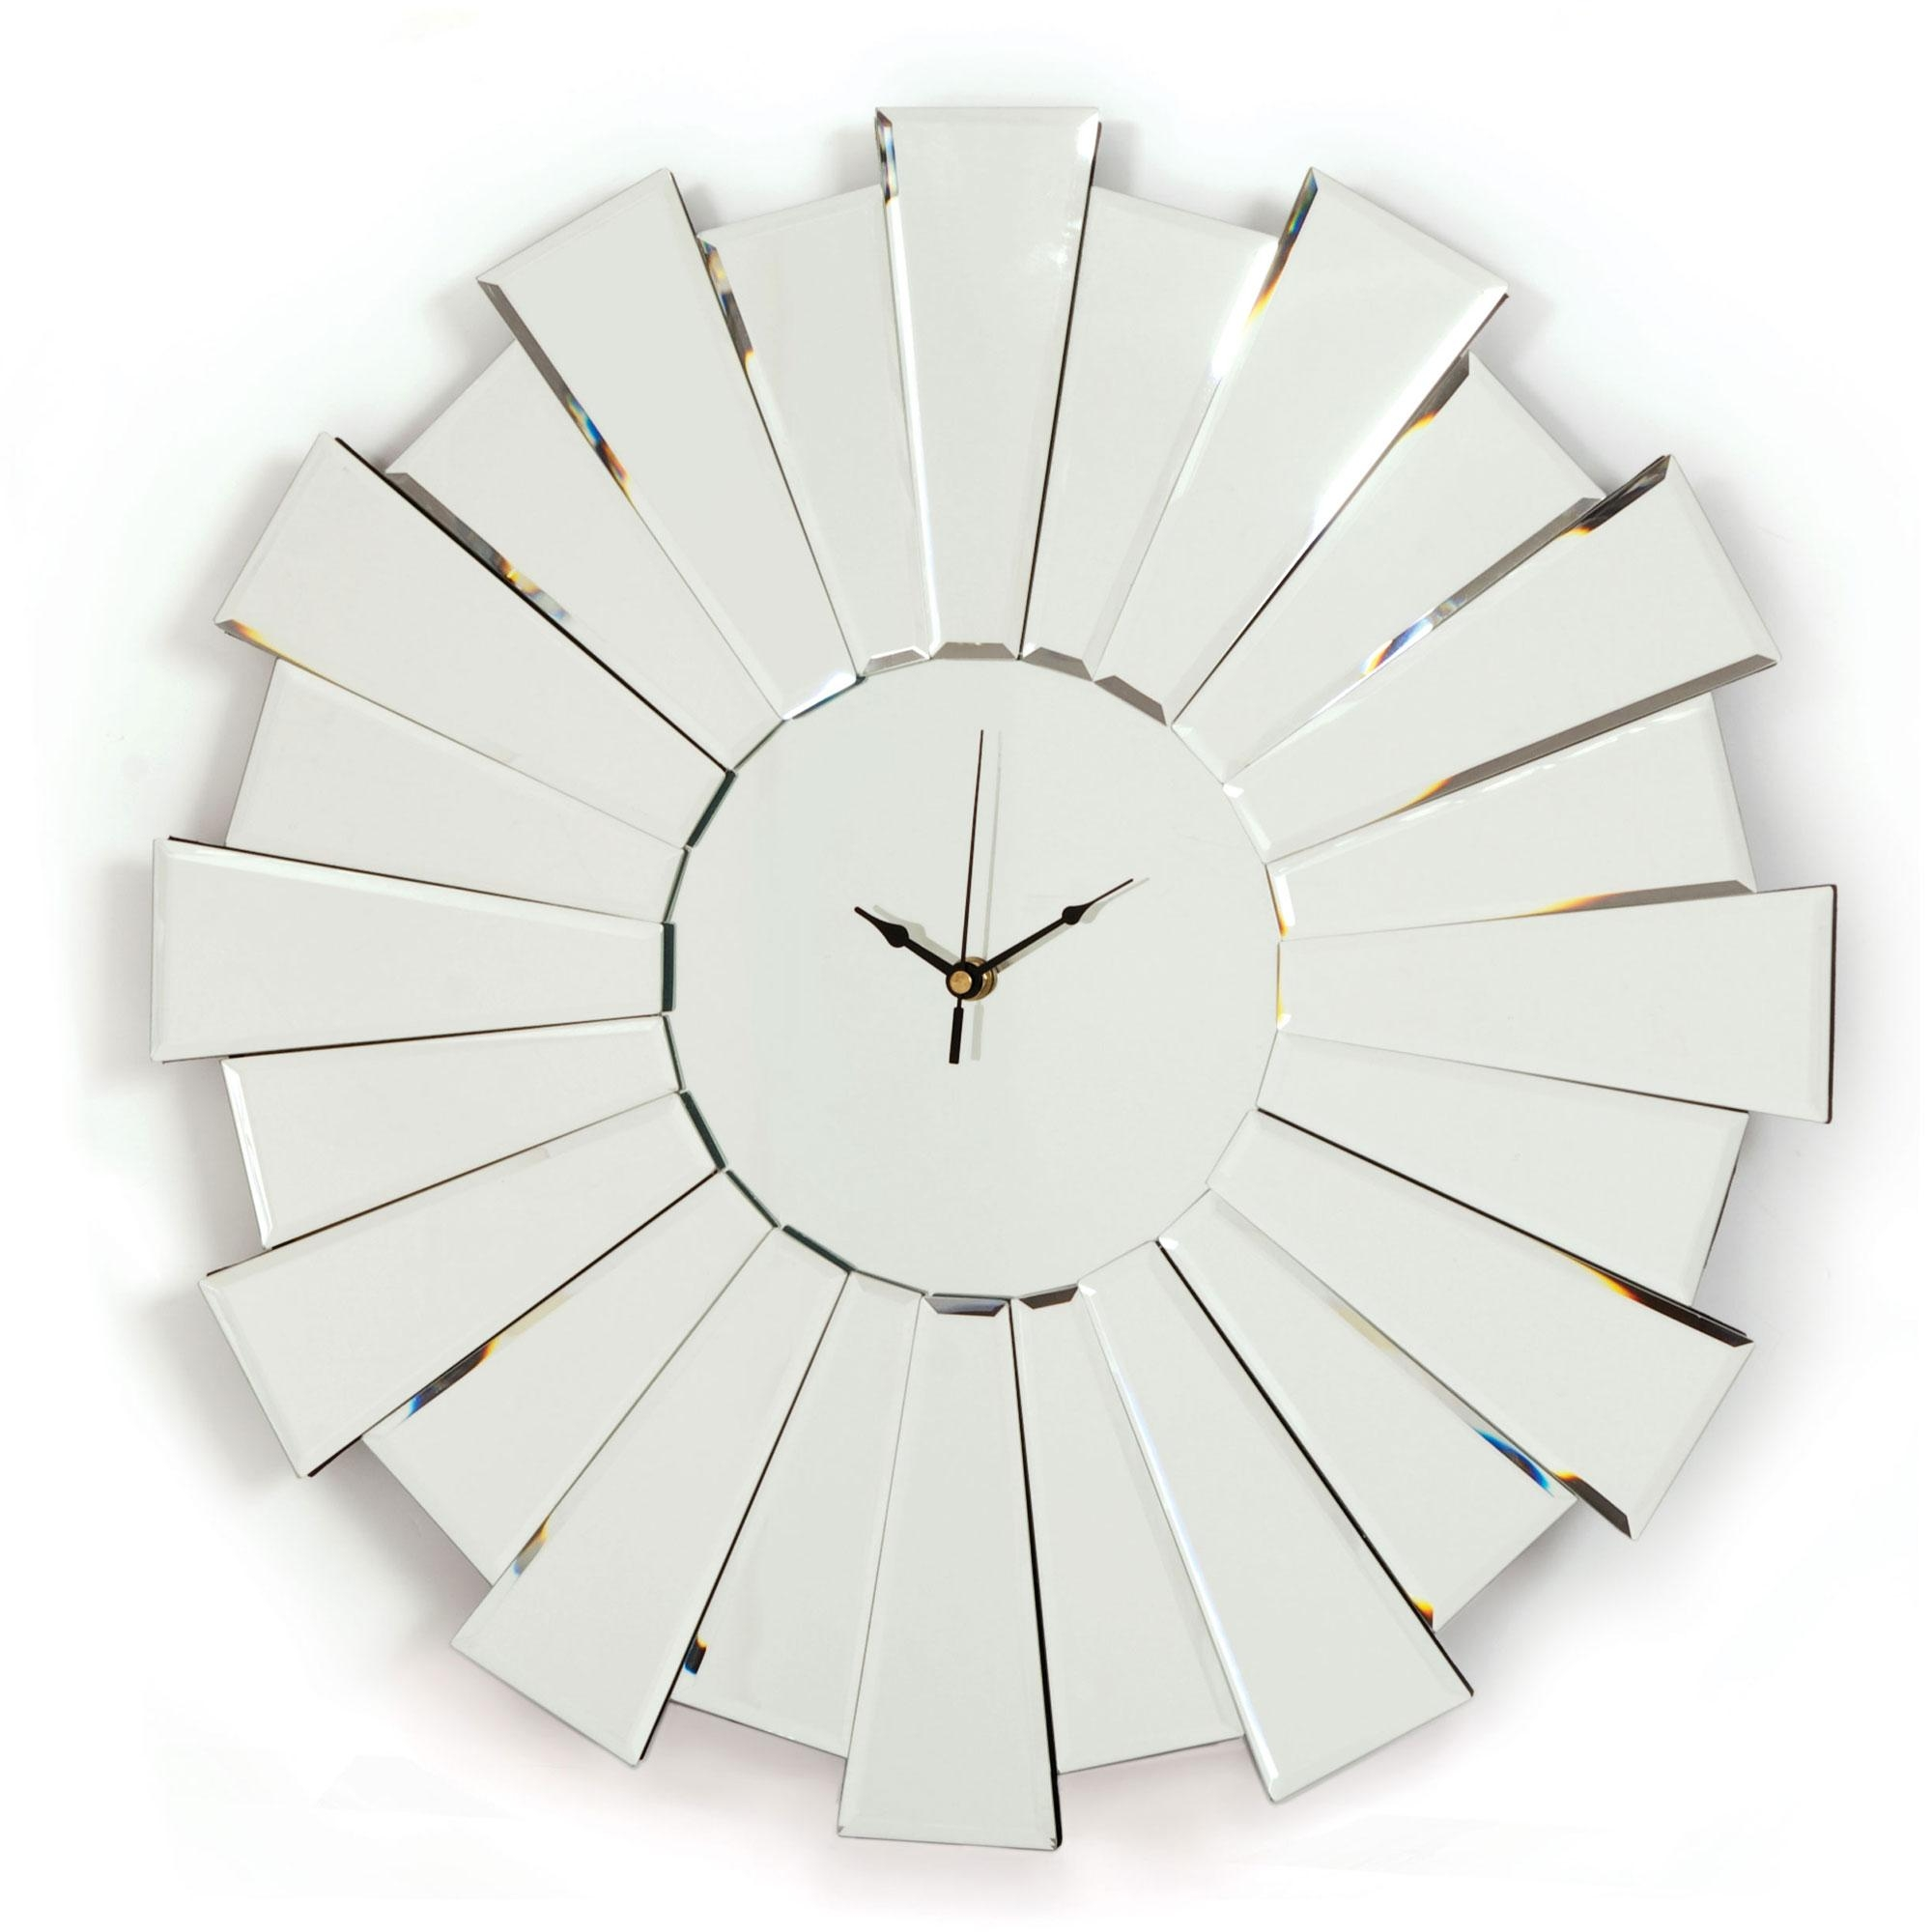 Buy Art Deco Style Mirrored Wall Clocks Online, Uk | Arrowfile In Buy Art Deco Mirror (Image 12 of 20)